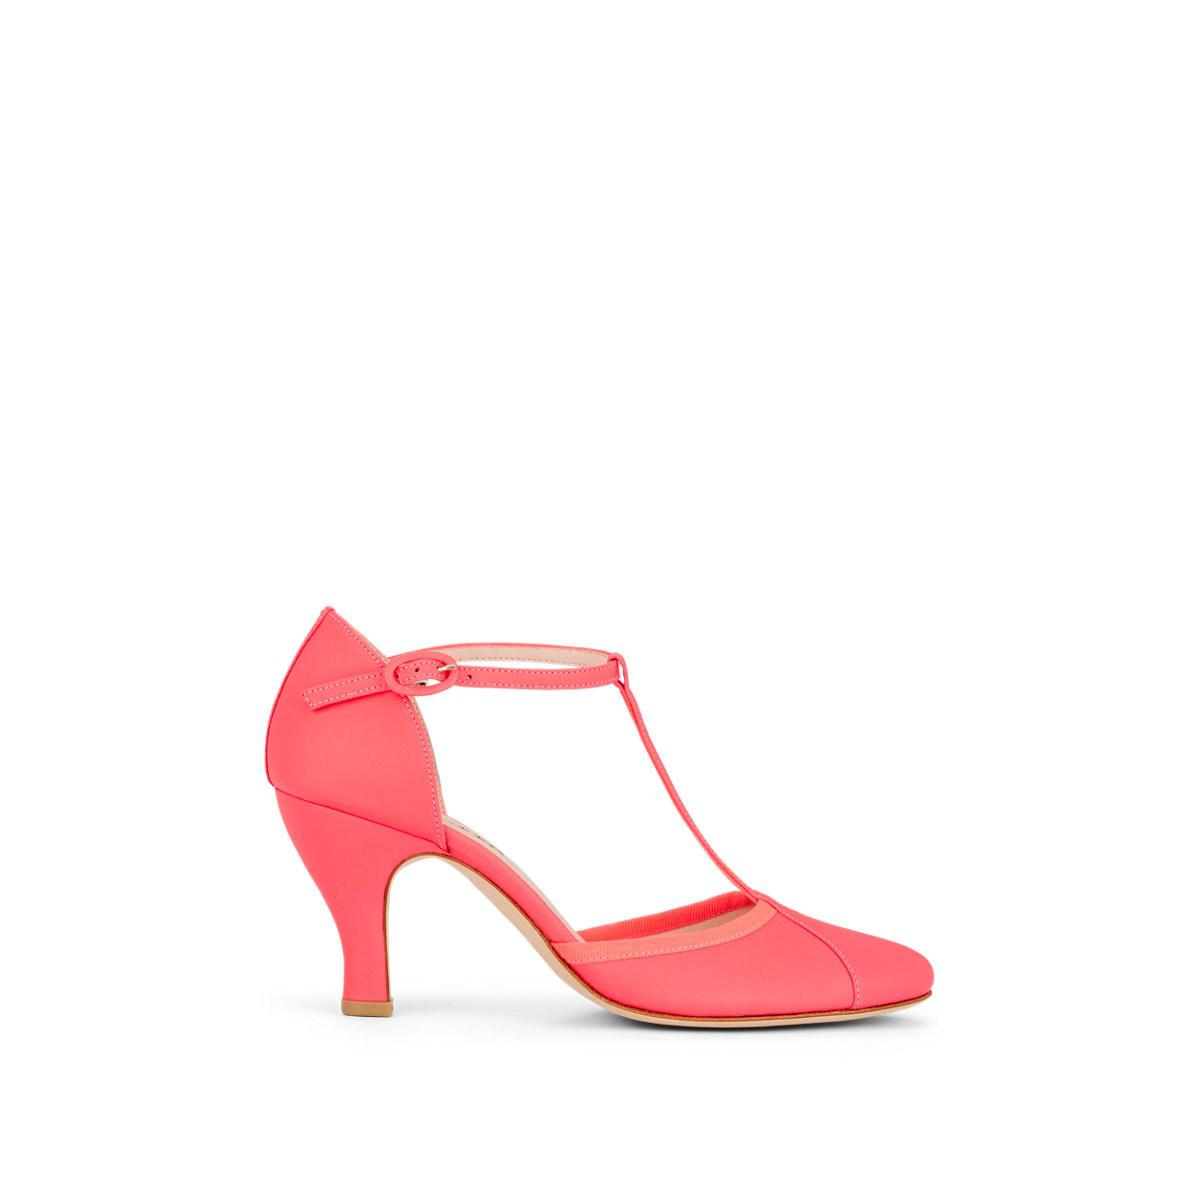 872058c8994 Lyst - Repetto Baya Leather T-strap Pumps in Pink